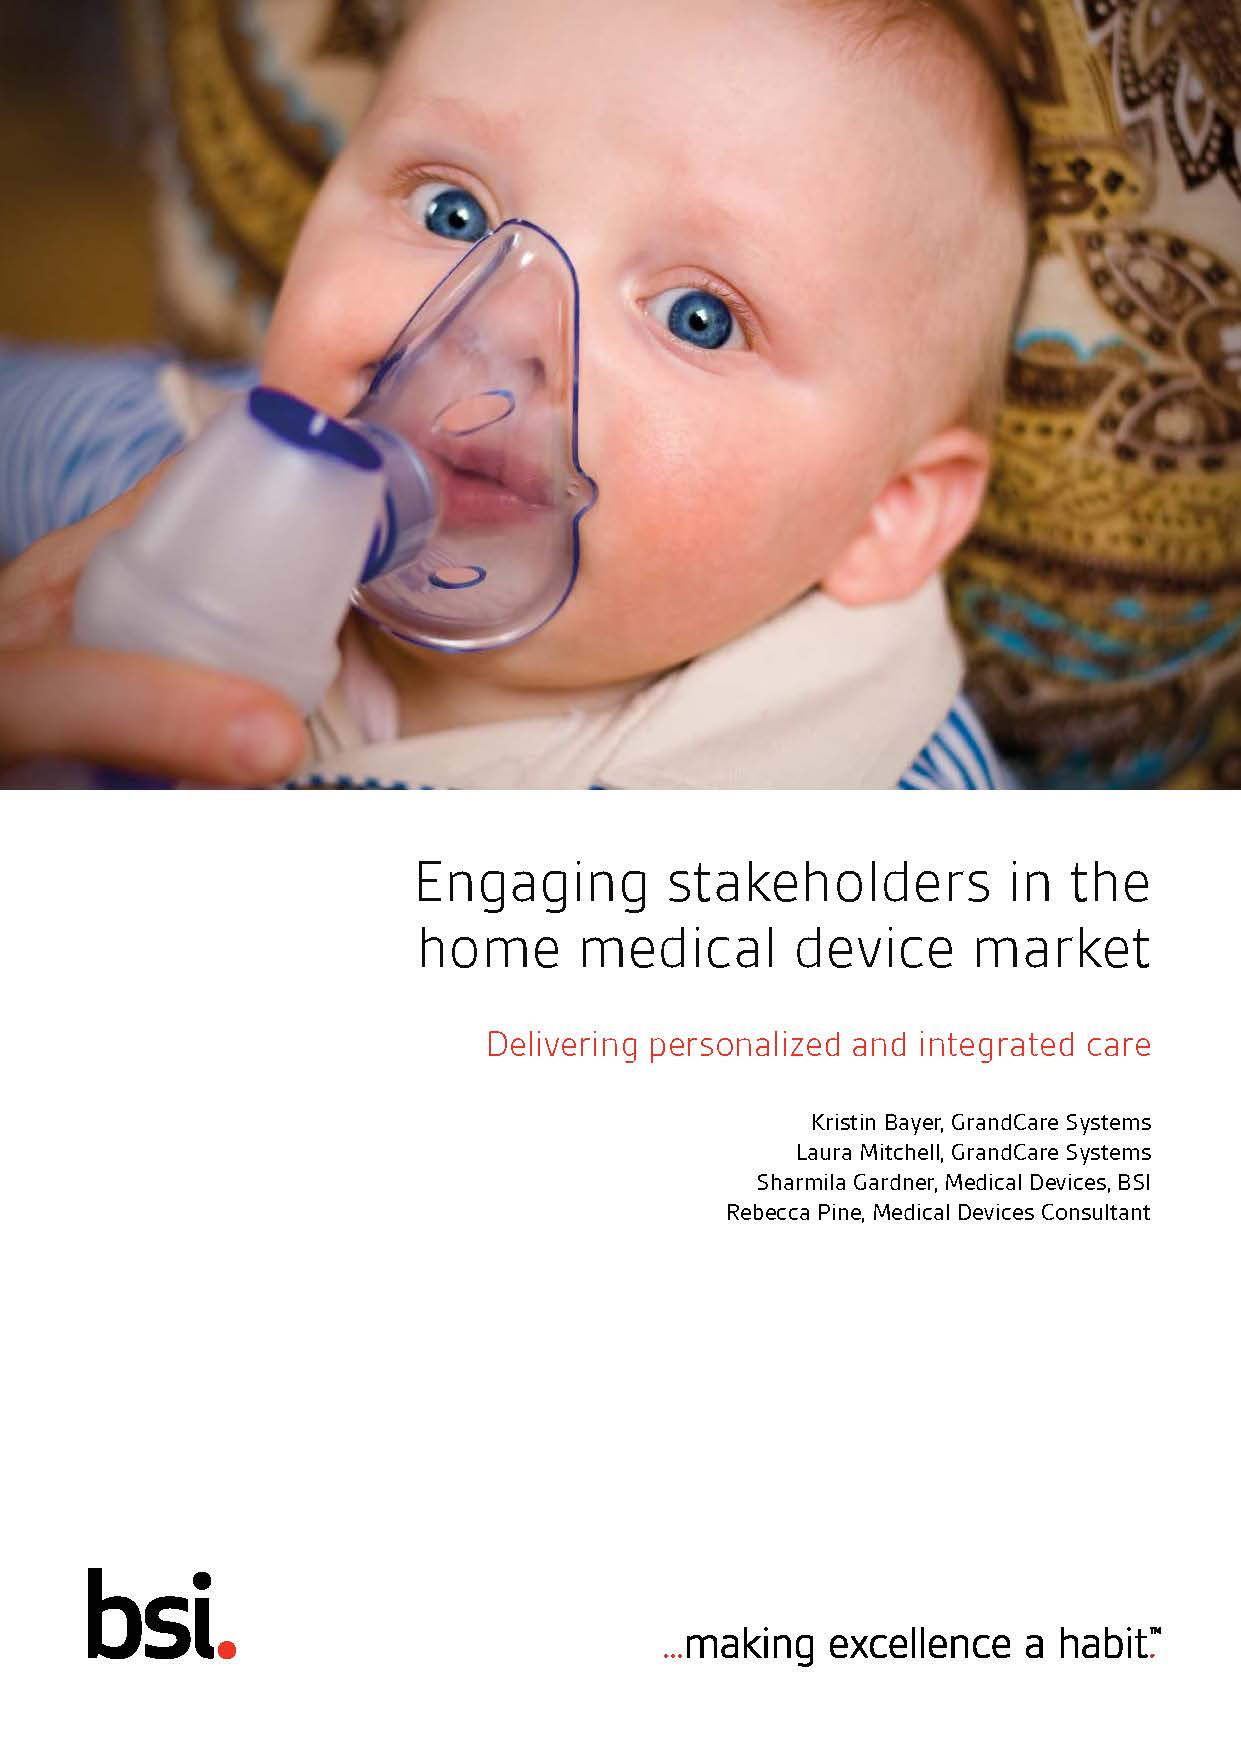 Engaging Stakeholders in the Home Medical Device Market